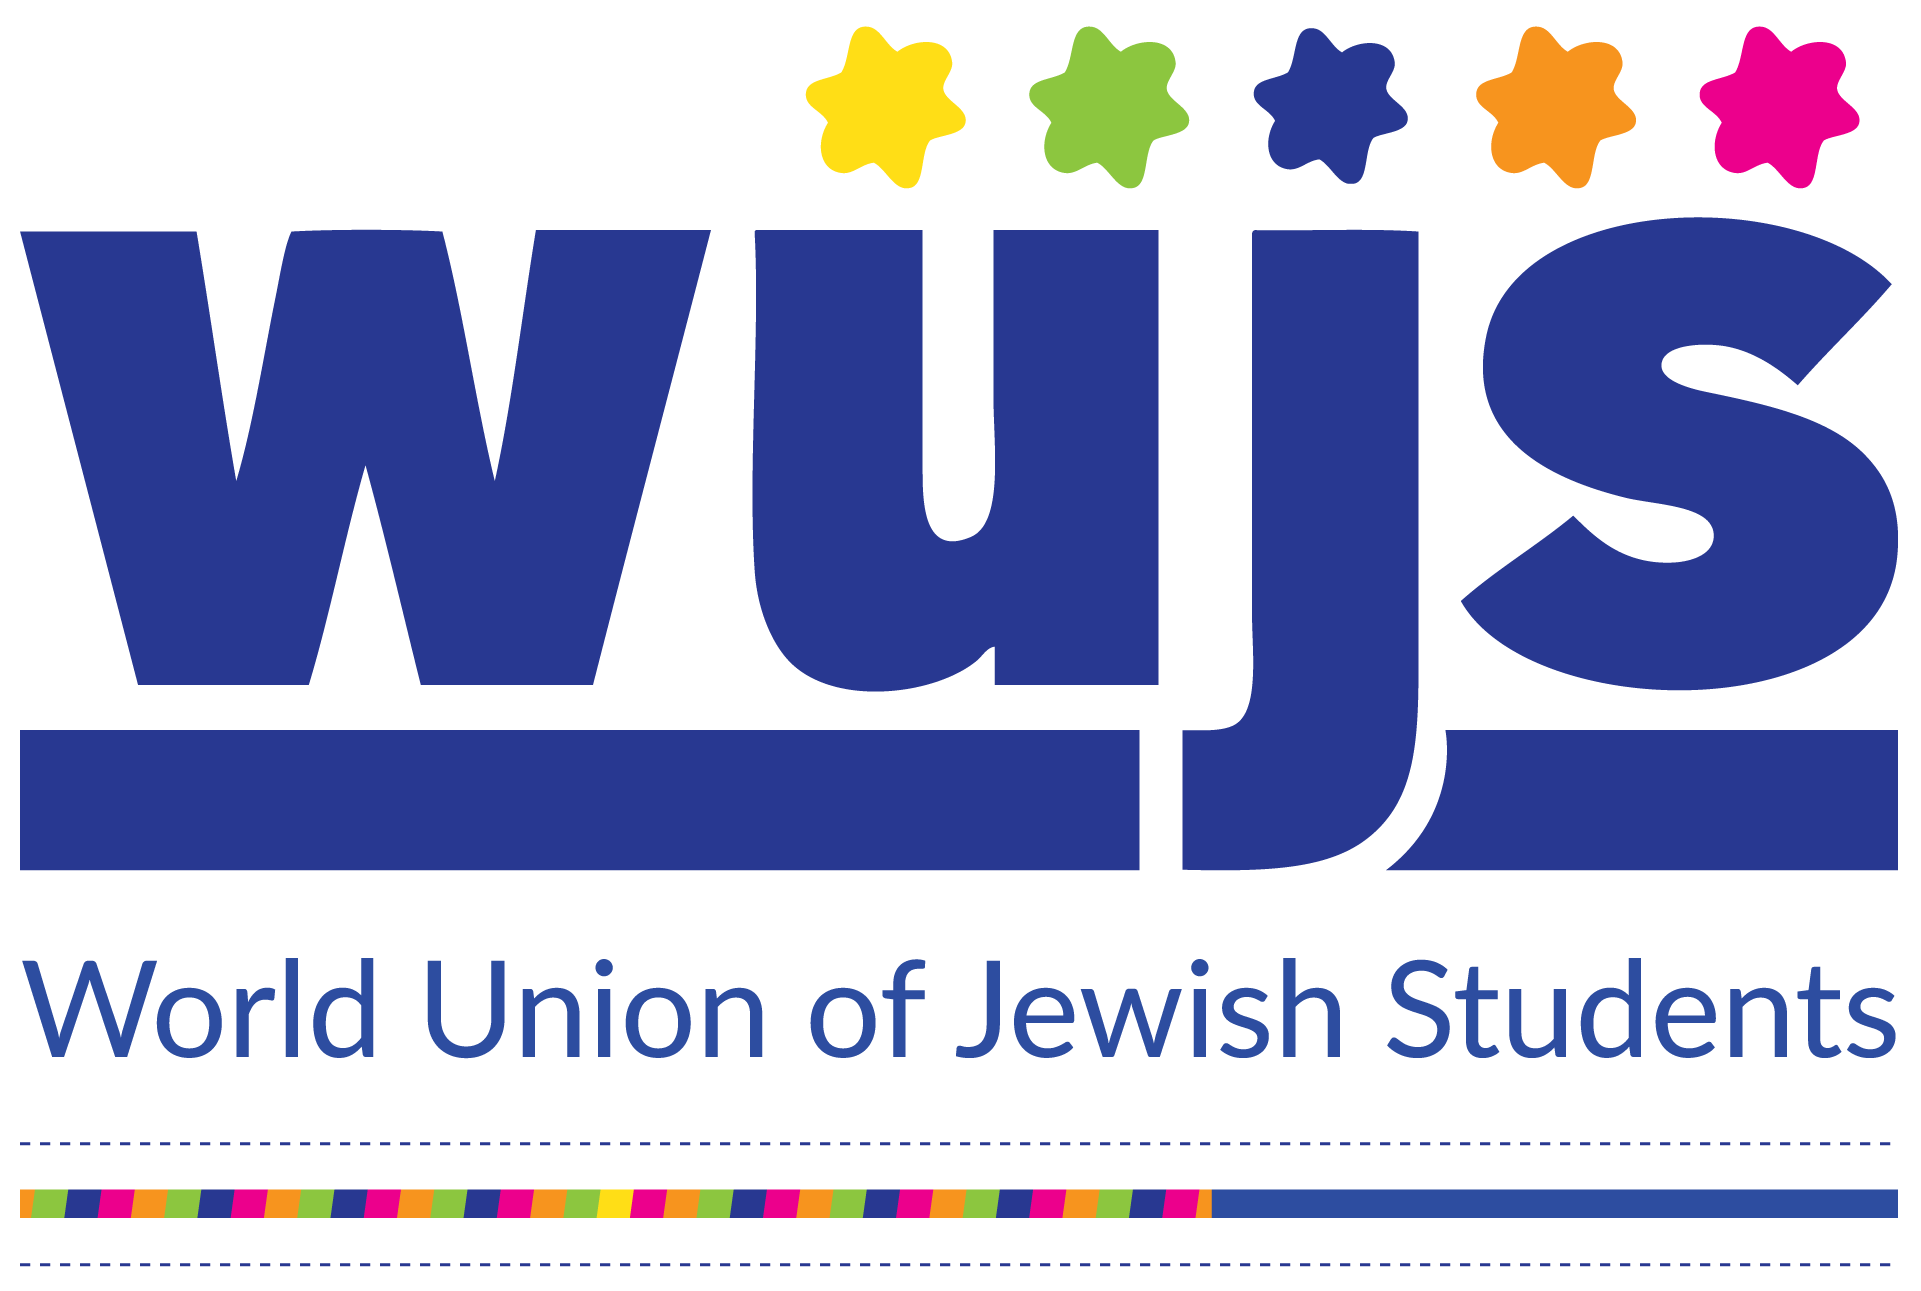 logo for World Union of Jewish Students